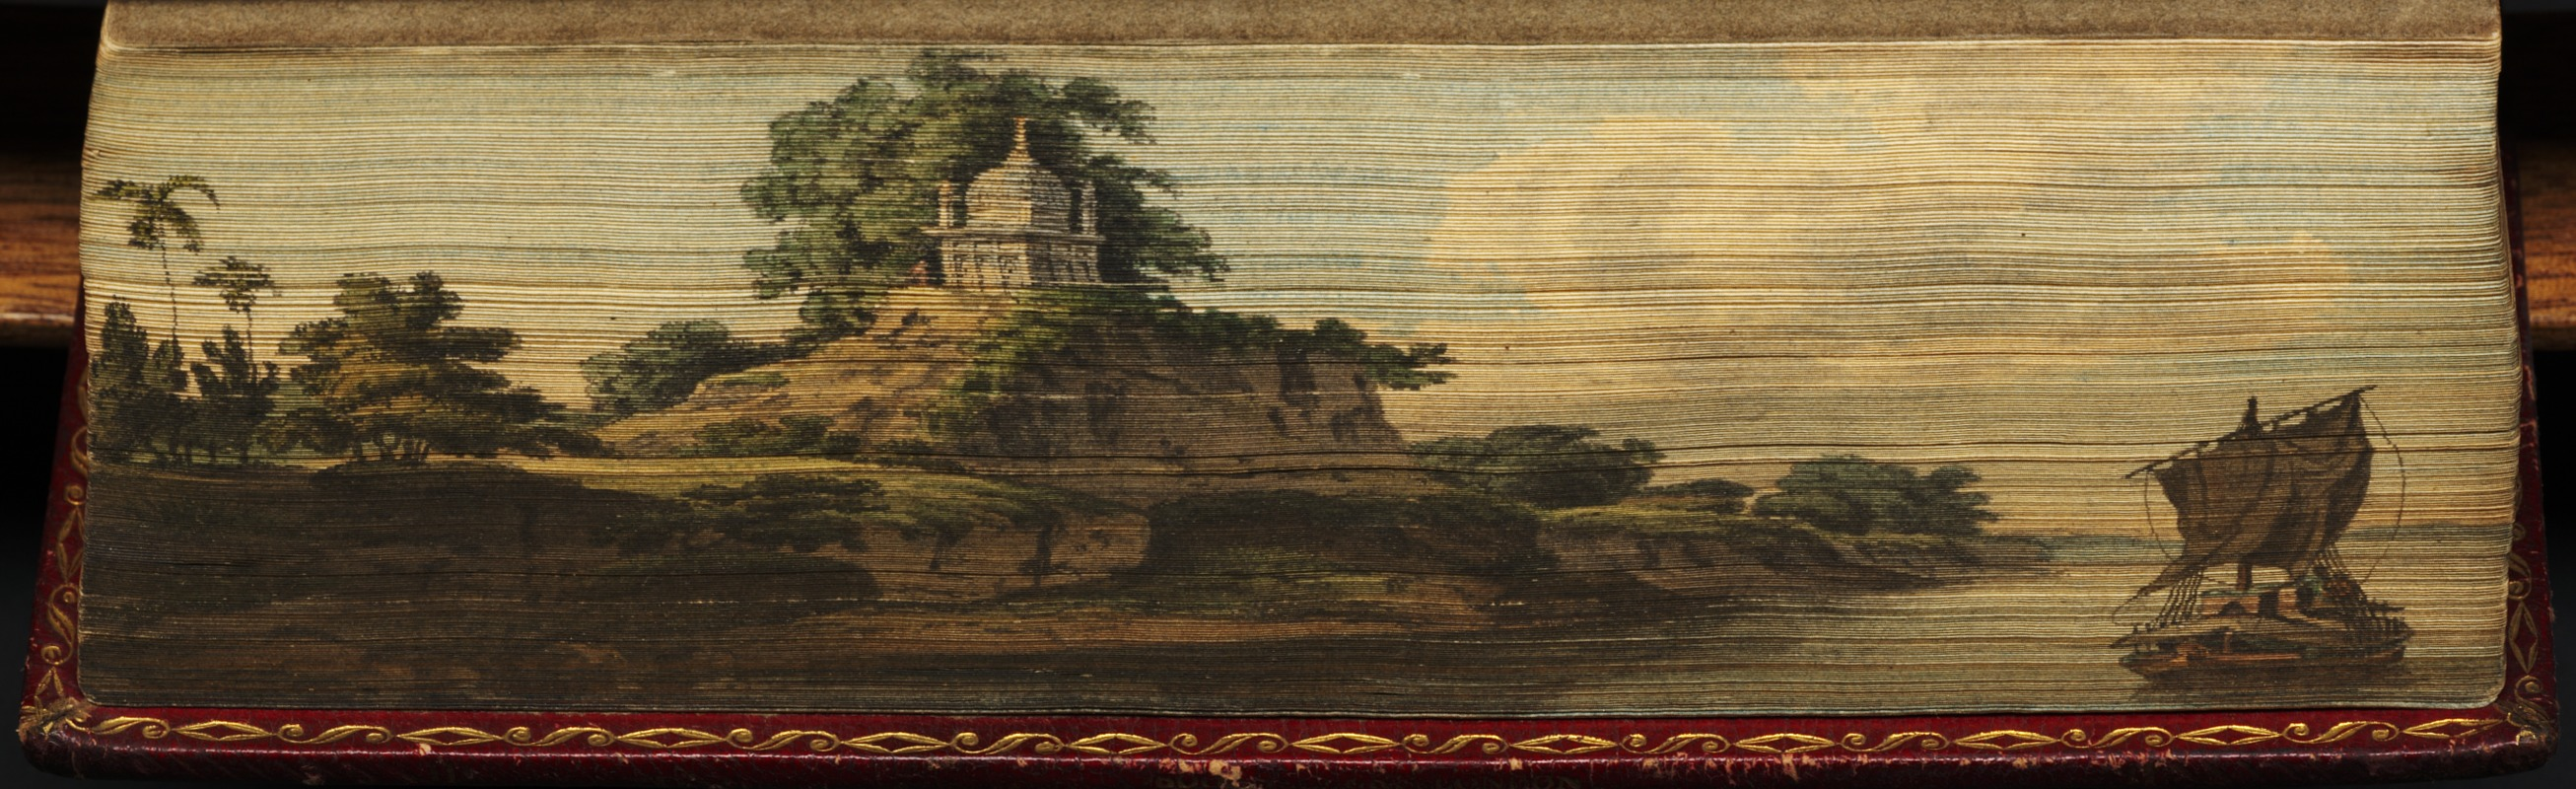 Indian river scene with Hindu temple